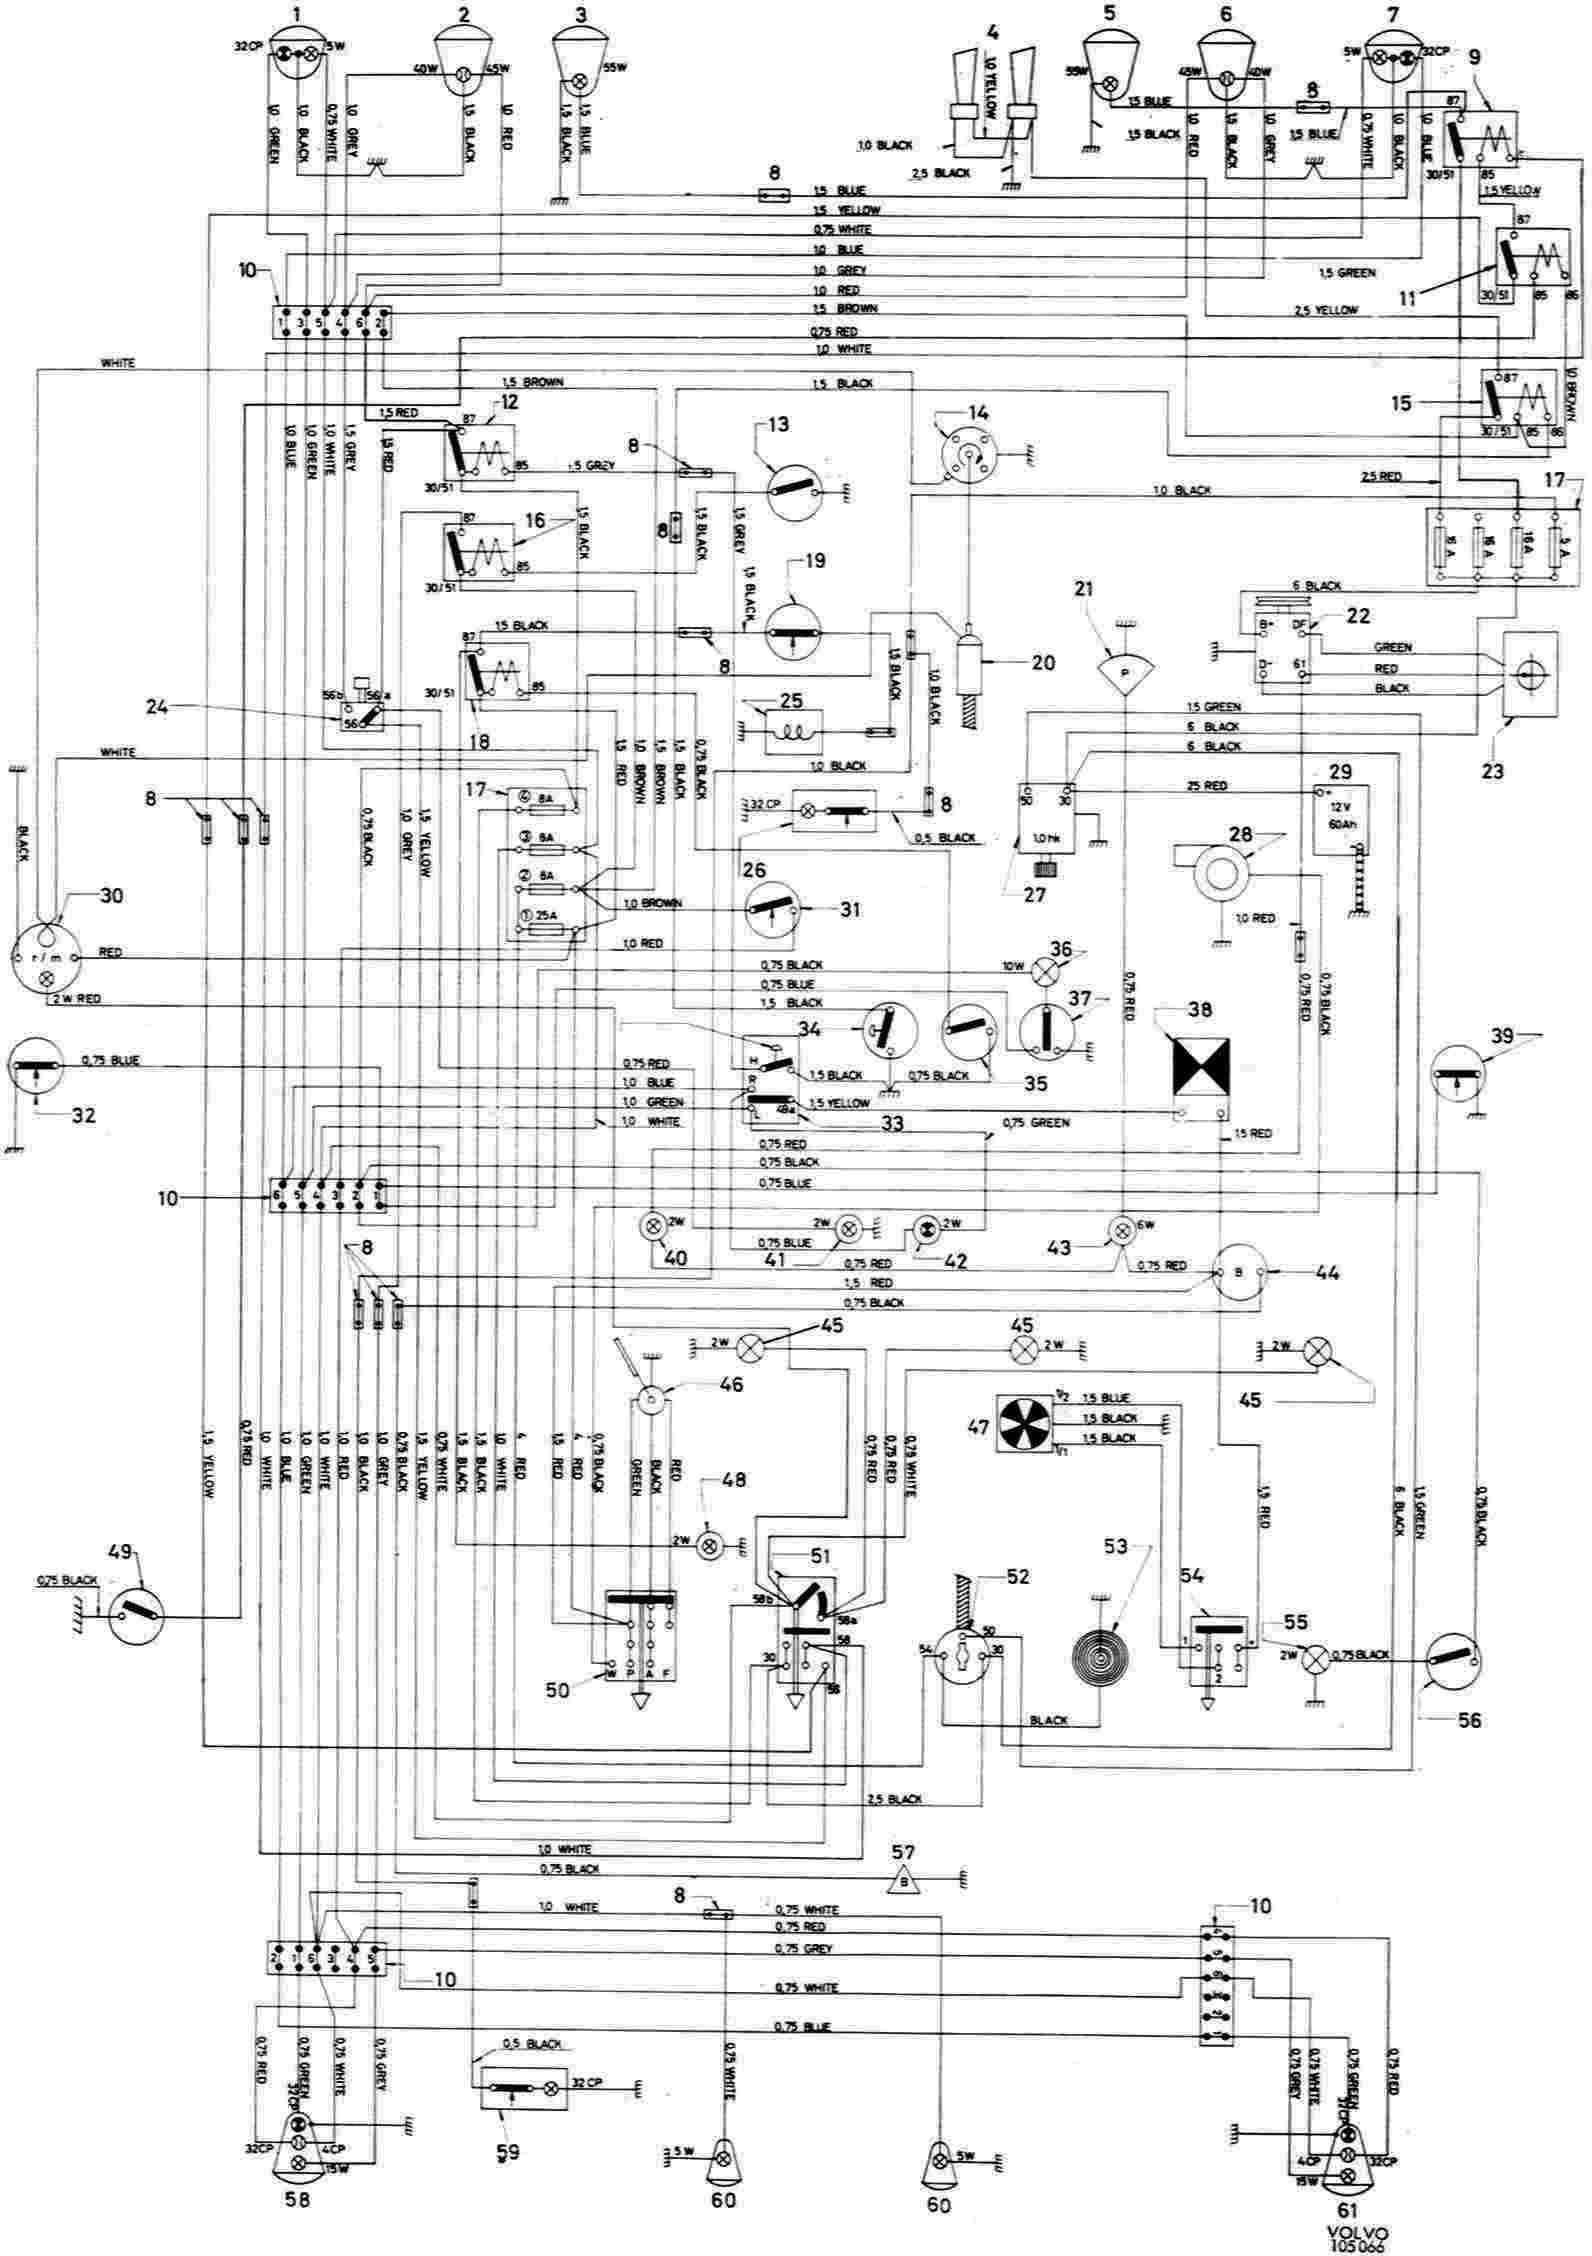 [CSDW_4250]   Wiring Diagram Cars Trucks. Wiring Diagram Cars Trucks. Truck Horn Wiring  Wiring Diagrams | Volvo v70, Volvo, Semi trucks | Volvo Semi Truck Wiring Diagram |  | Pinterest